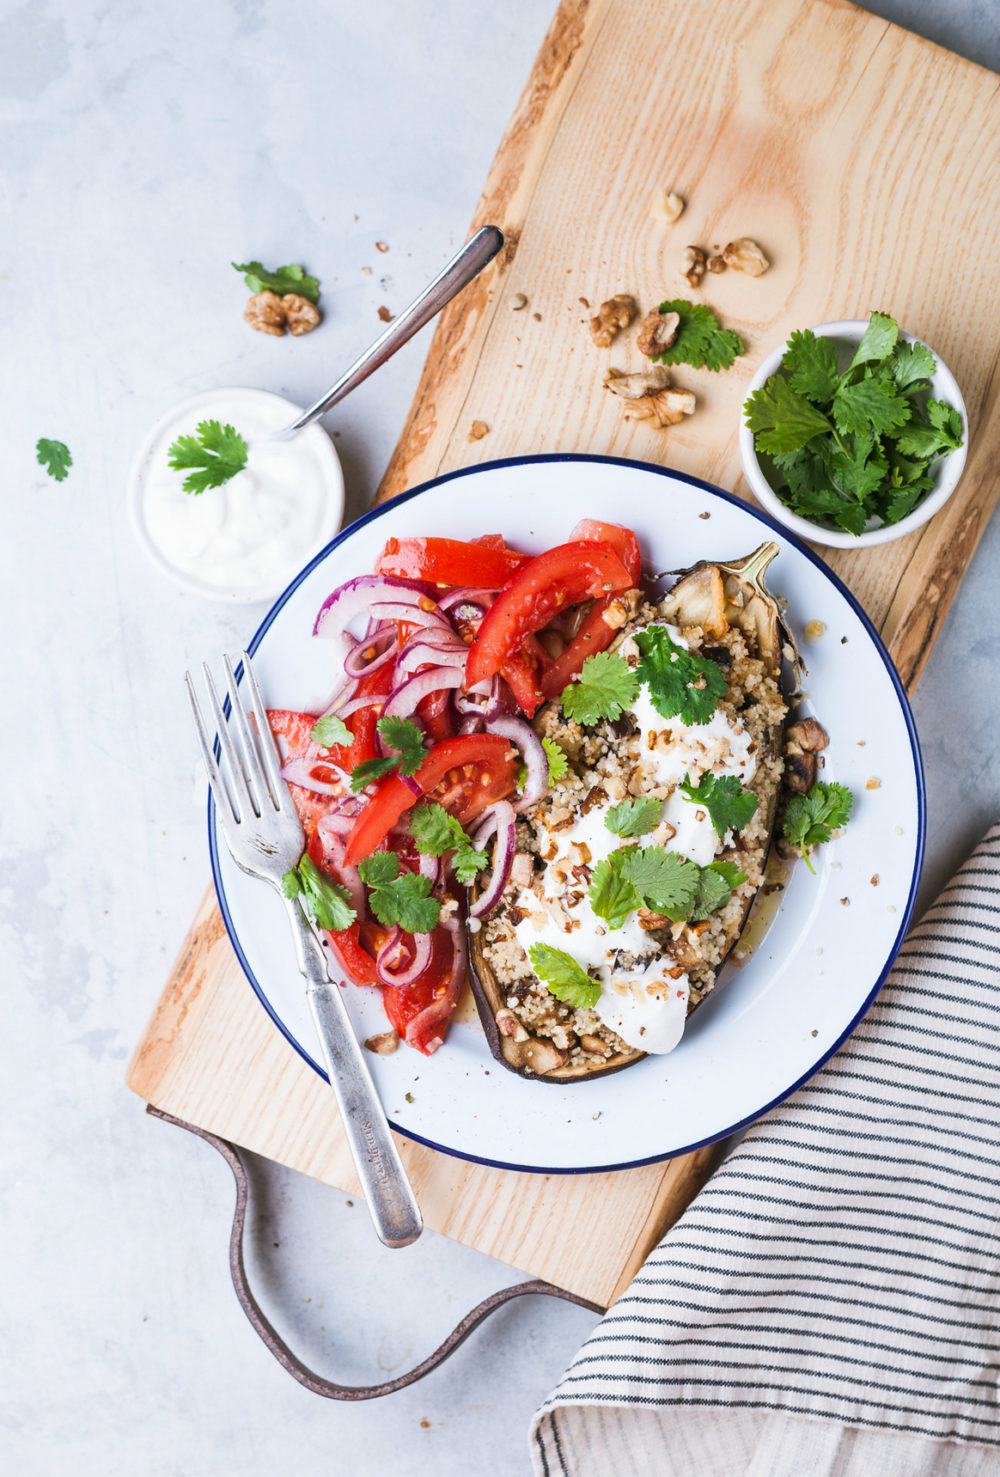 White plate on wood cutting board with tomato salad and eggplant meal